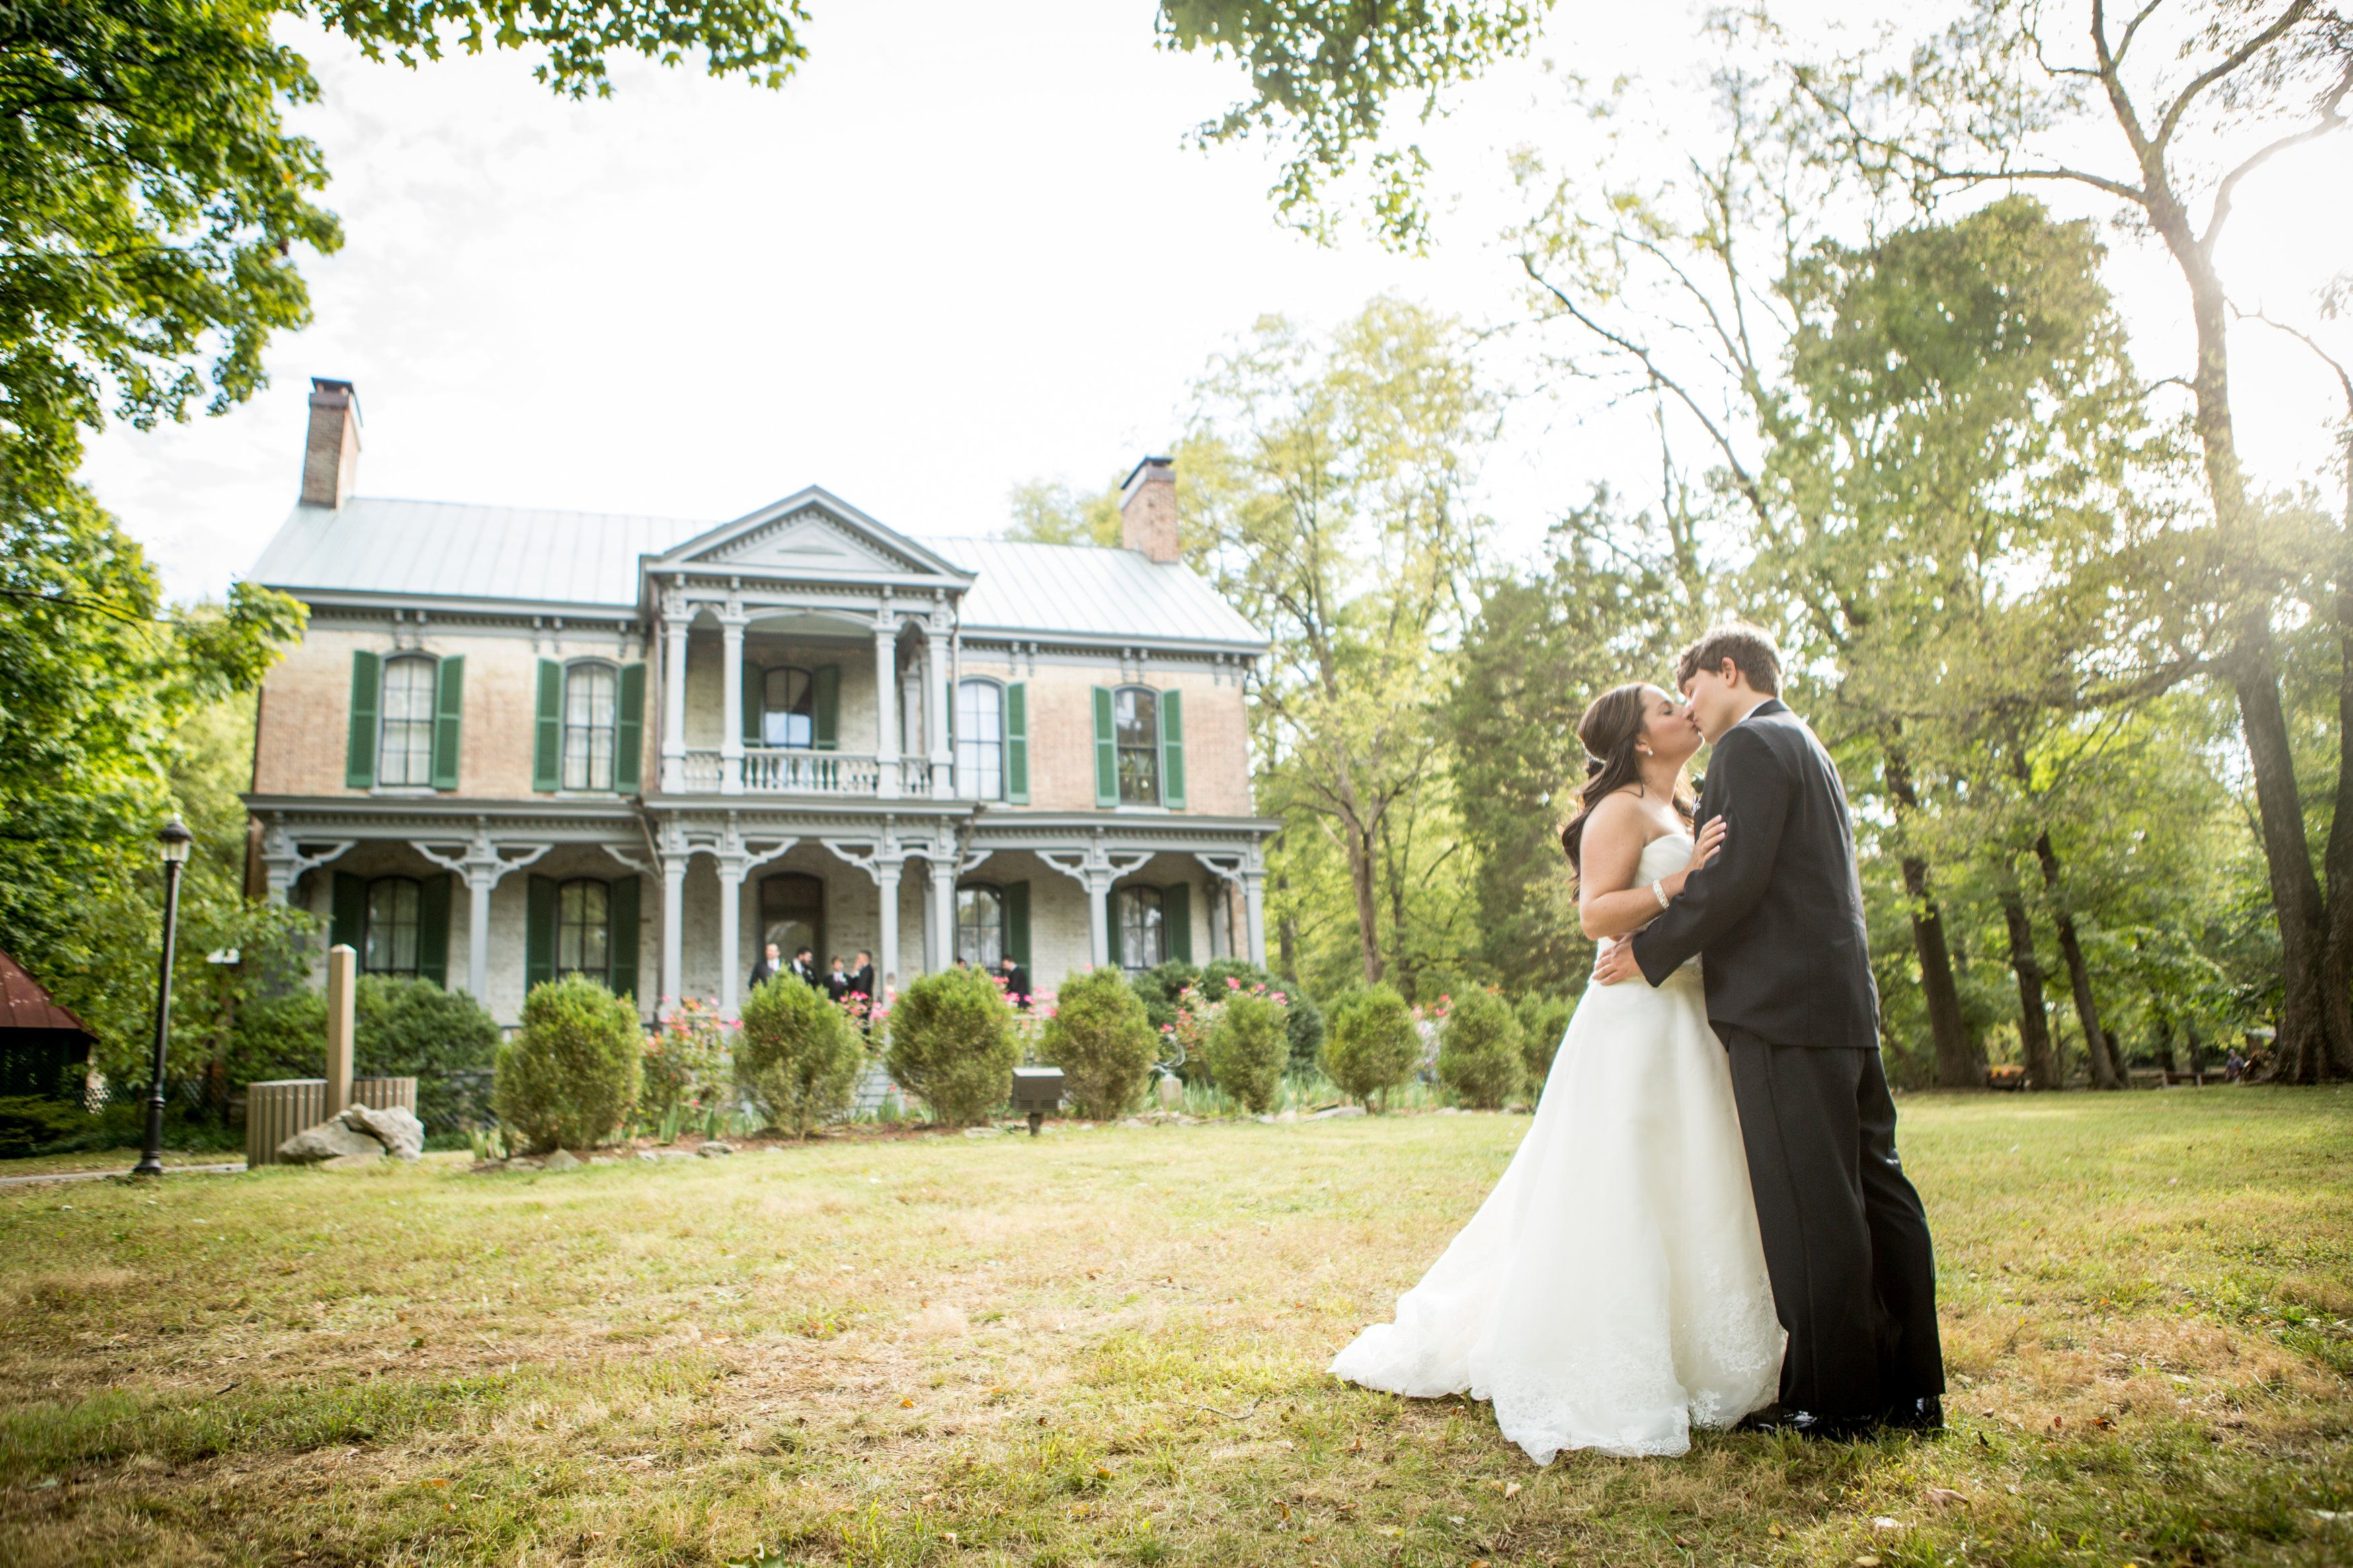 Nashville Zoo Wedding Historic Croft House Photo Matt Andrews Photography Pinterest